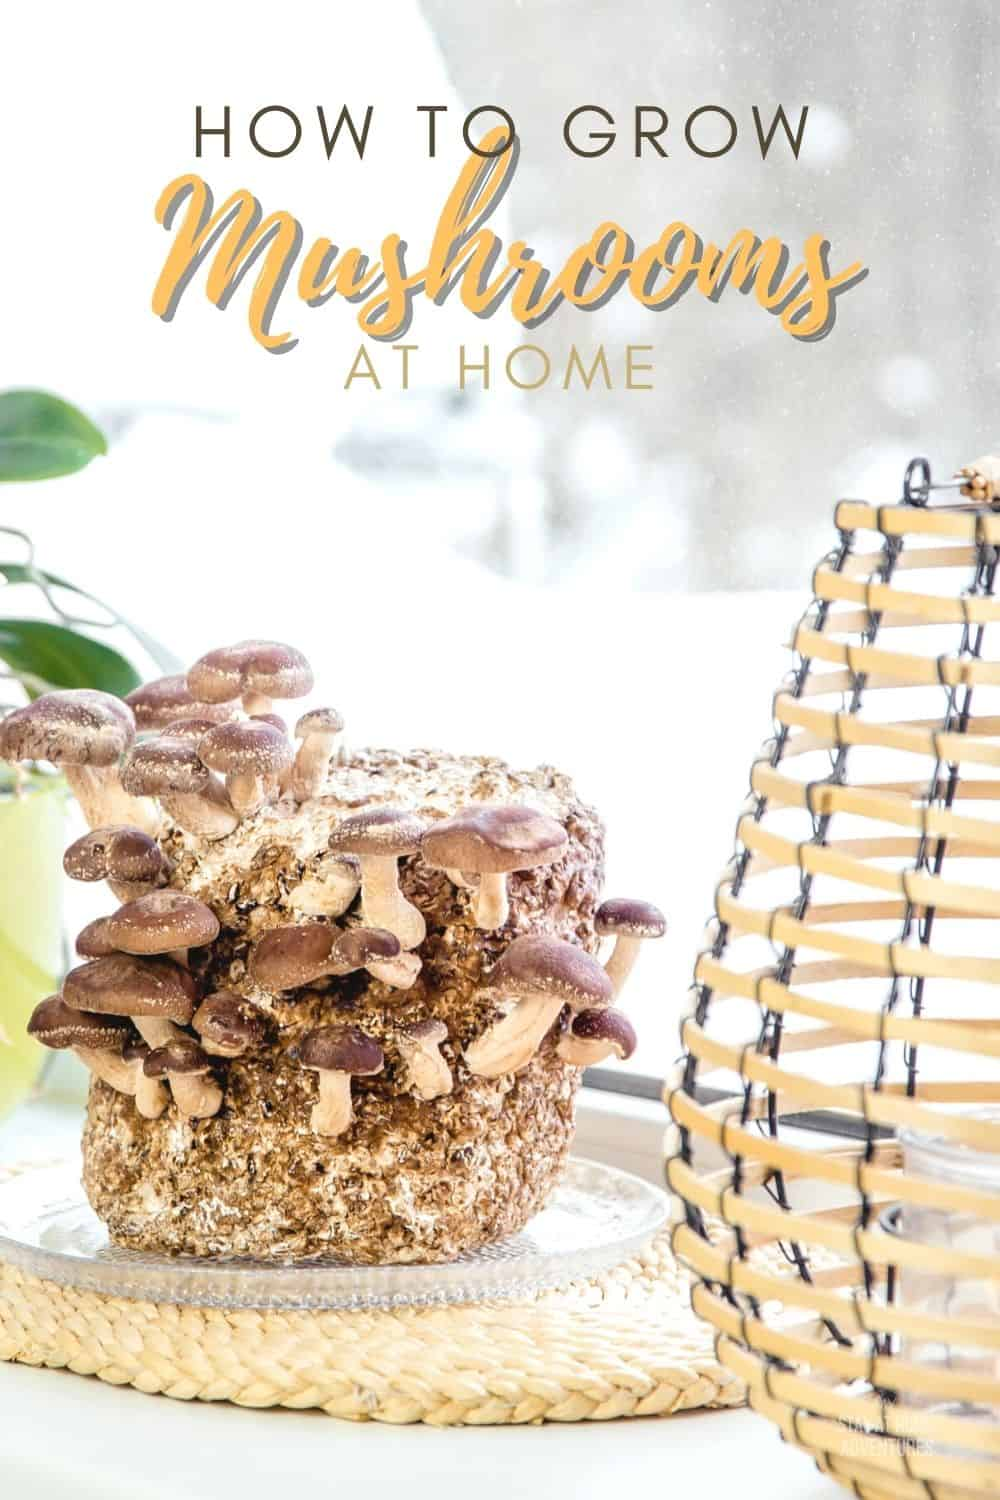 Mushroom is so popular for its low calorie yet packed with health benefits. That's why many like to grow mushrooms at home. via @mystayathome